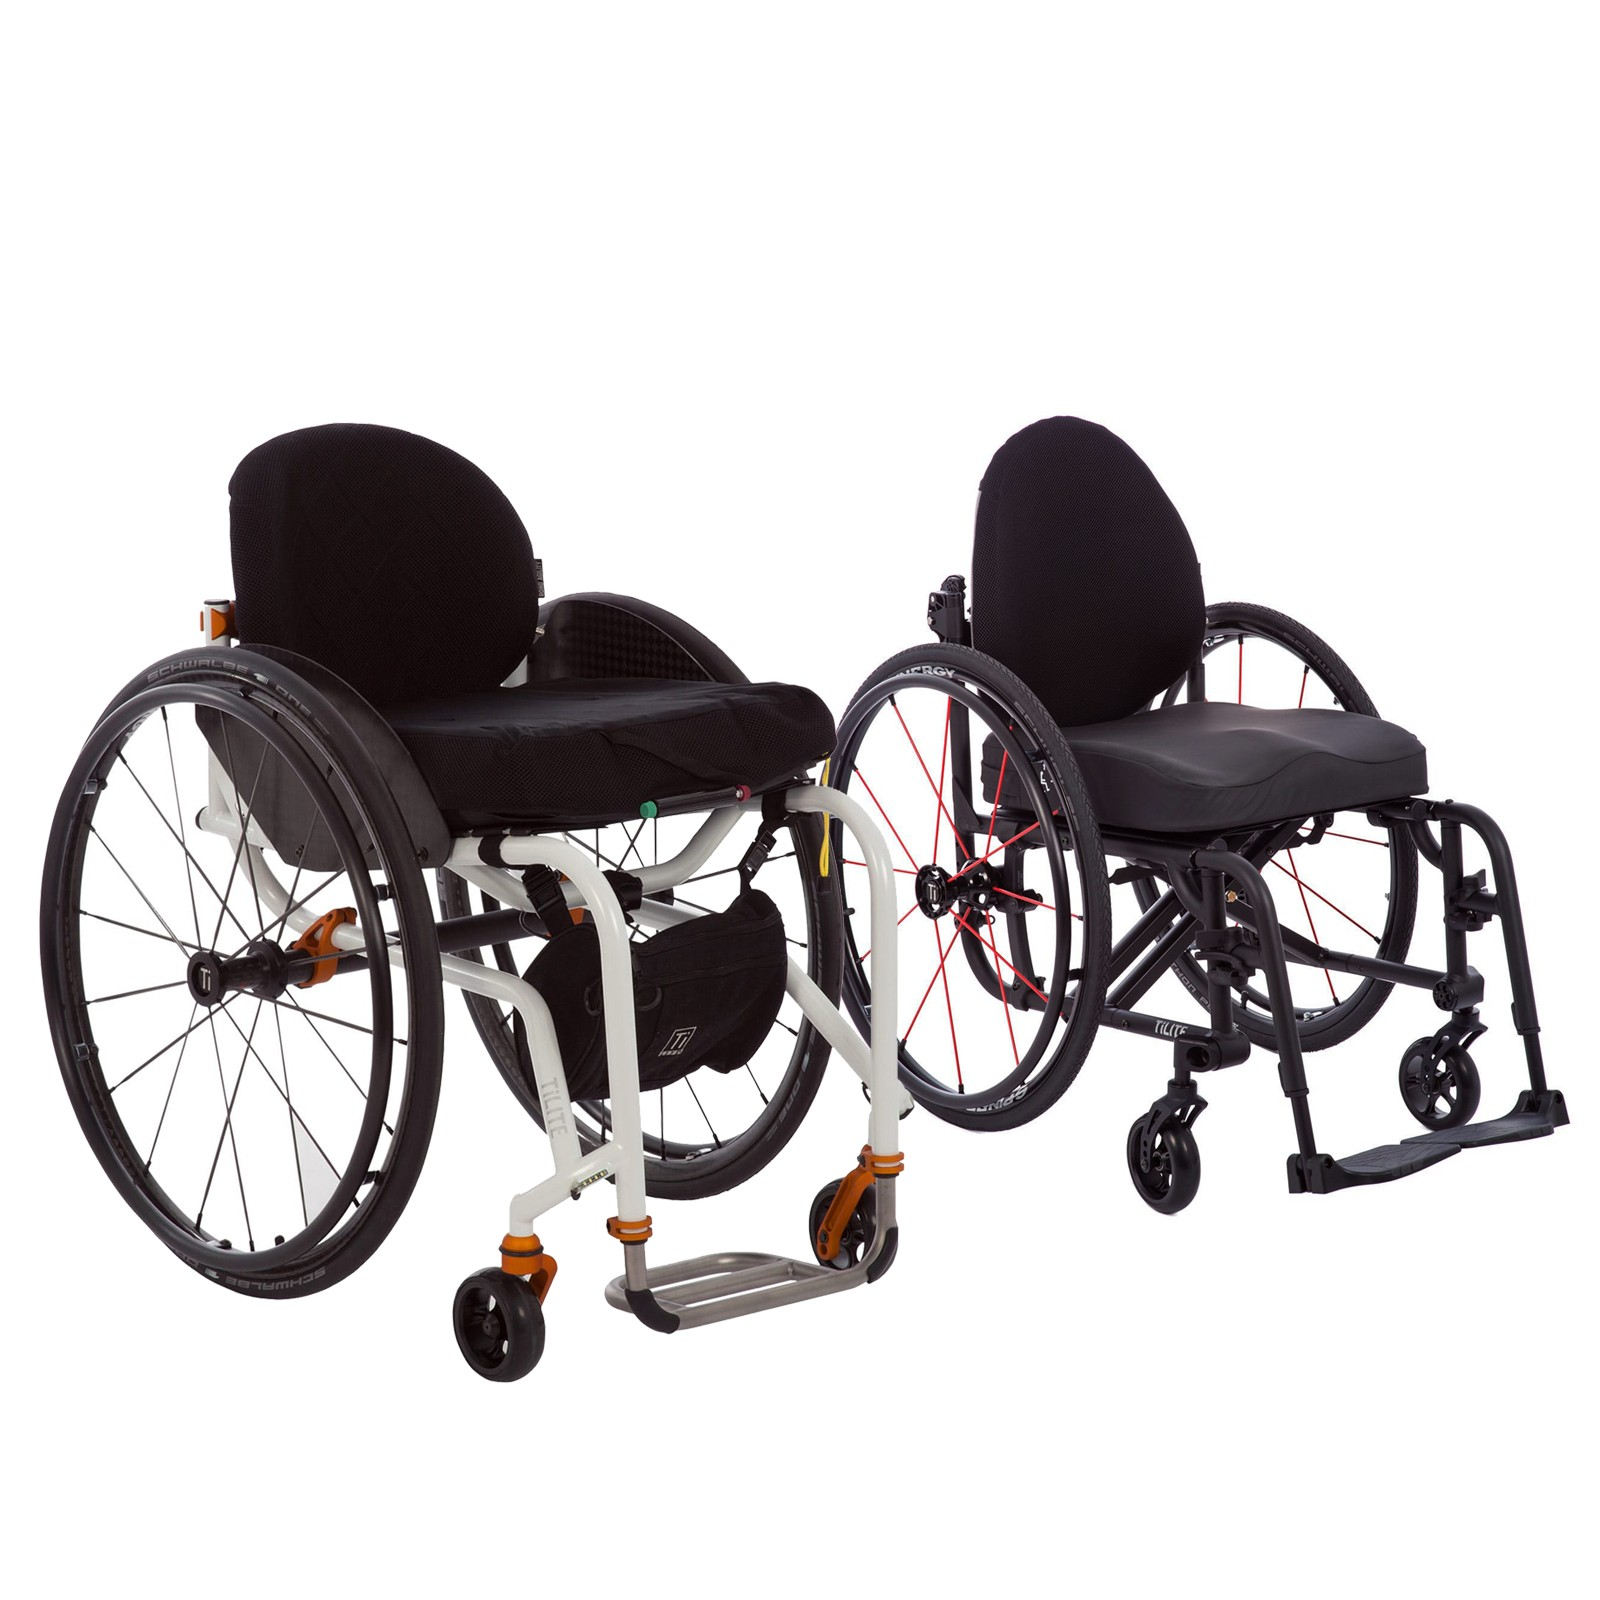 Deluxe Folding & Rigid Ultra Light Wheelchair Rental